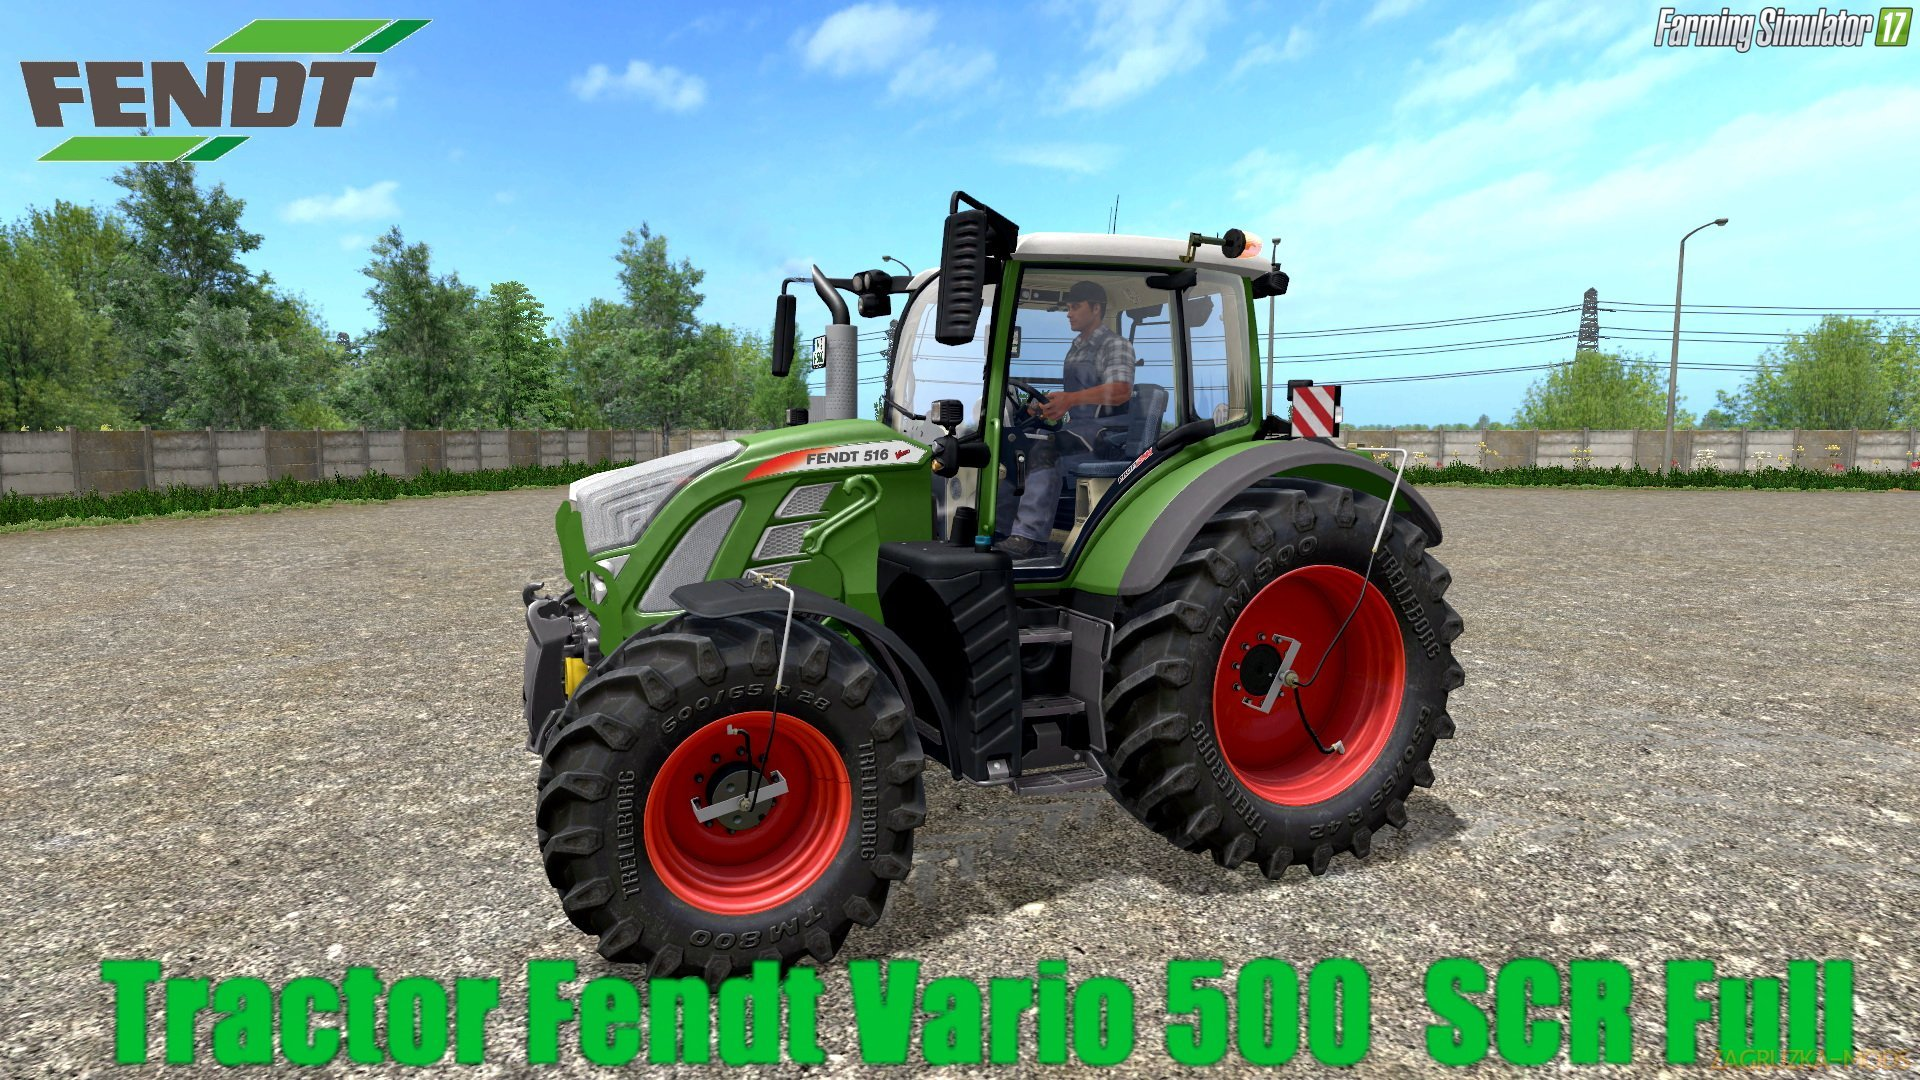 Fendt Vario 500 SCR Full Pack v2.0 for FS 17